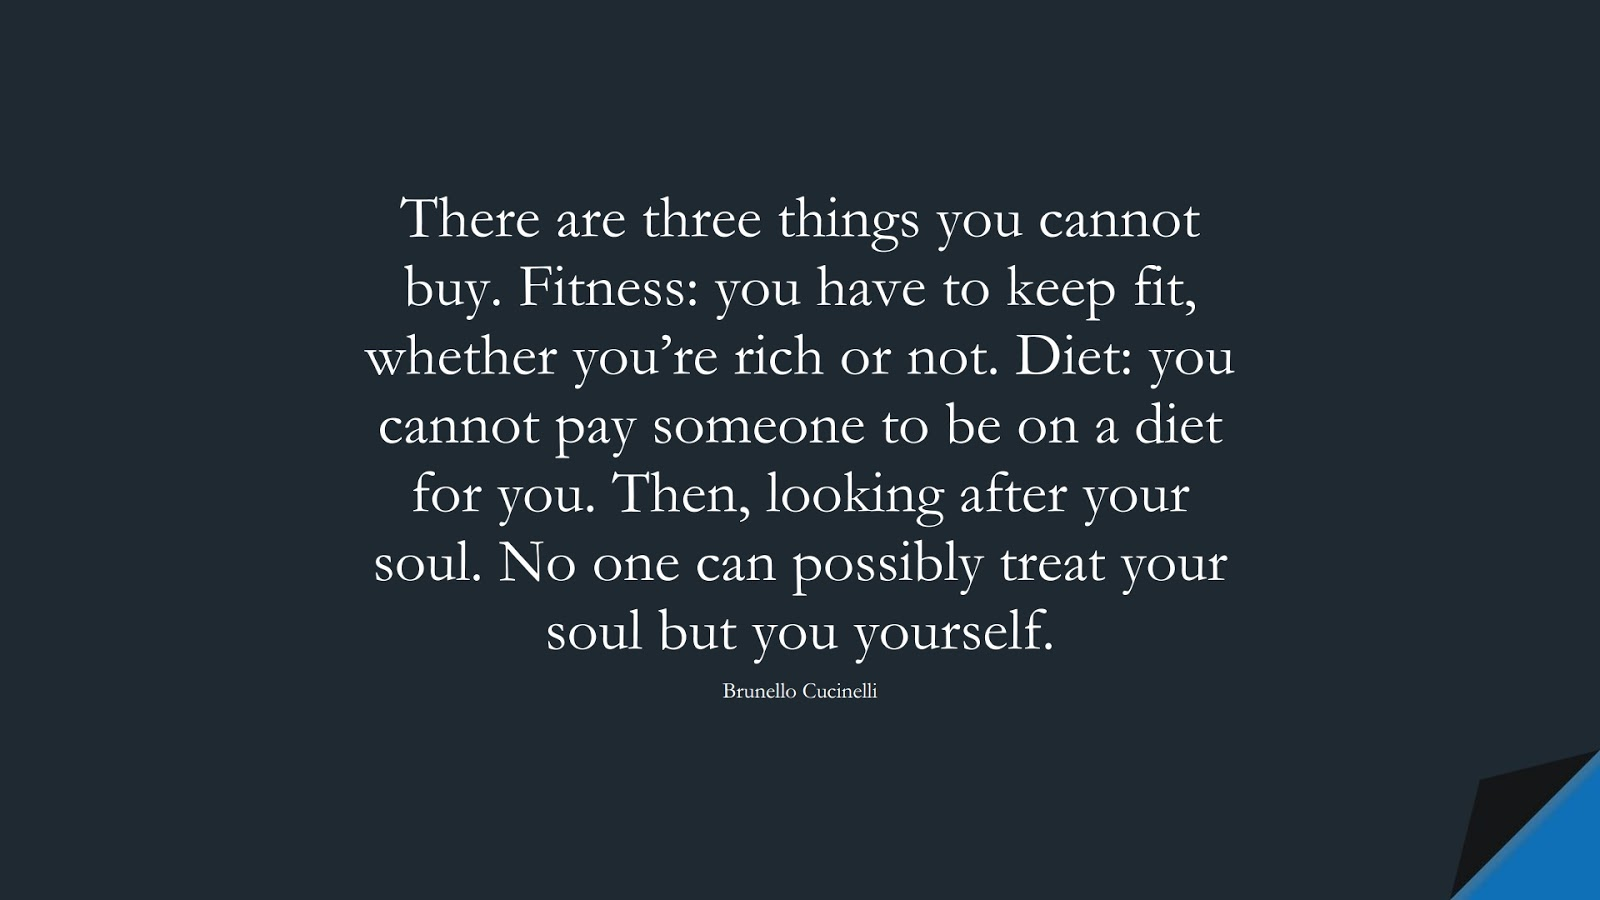 There are three things you cannot buy. Fitness: you have to keep fit, whether you're rich or not. Diet: you cannot pay someone to be on a diet for you. Then, looking after your soul. No one can possibly treat your soul but you yourself. (Brunello Cucinelli);  #StressQuotes